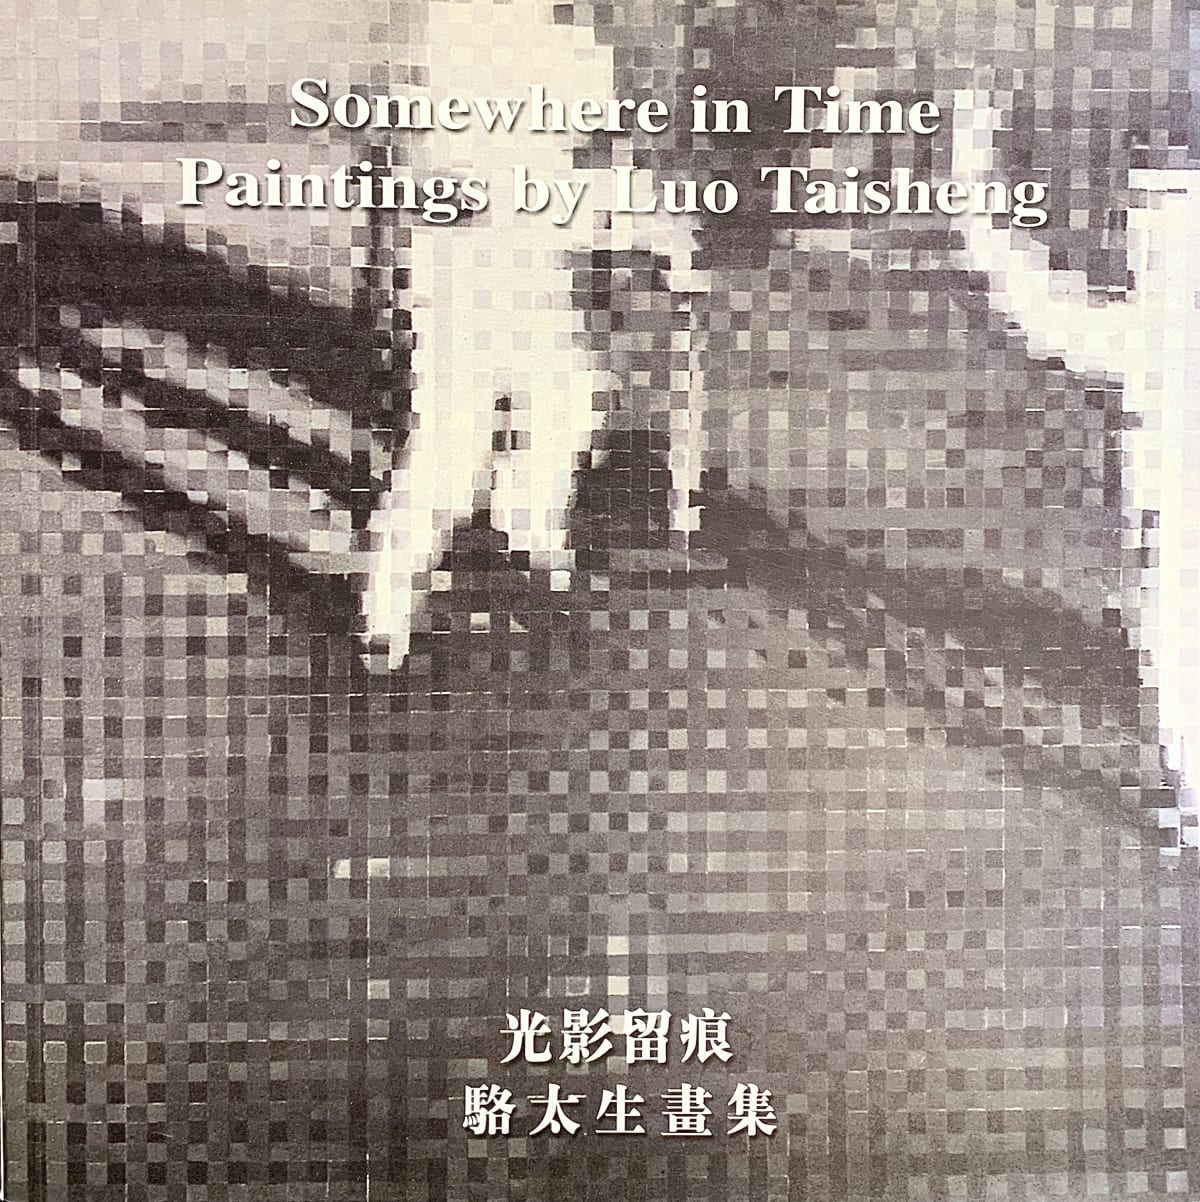 Somewhere in Time 光影留痕